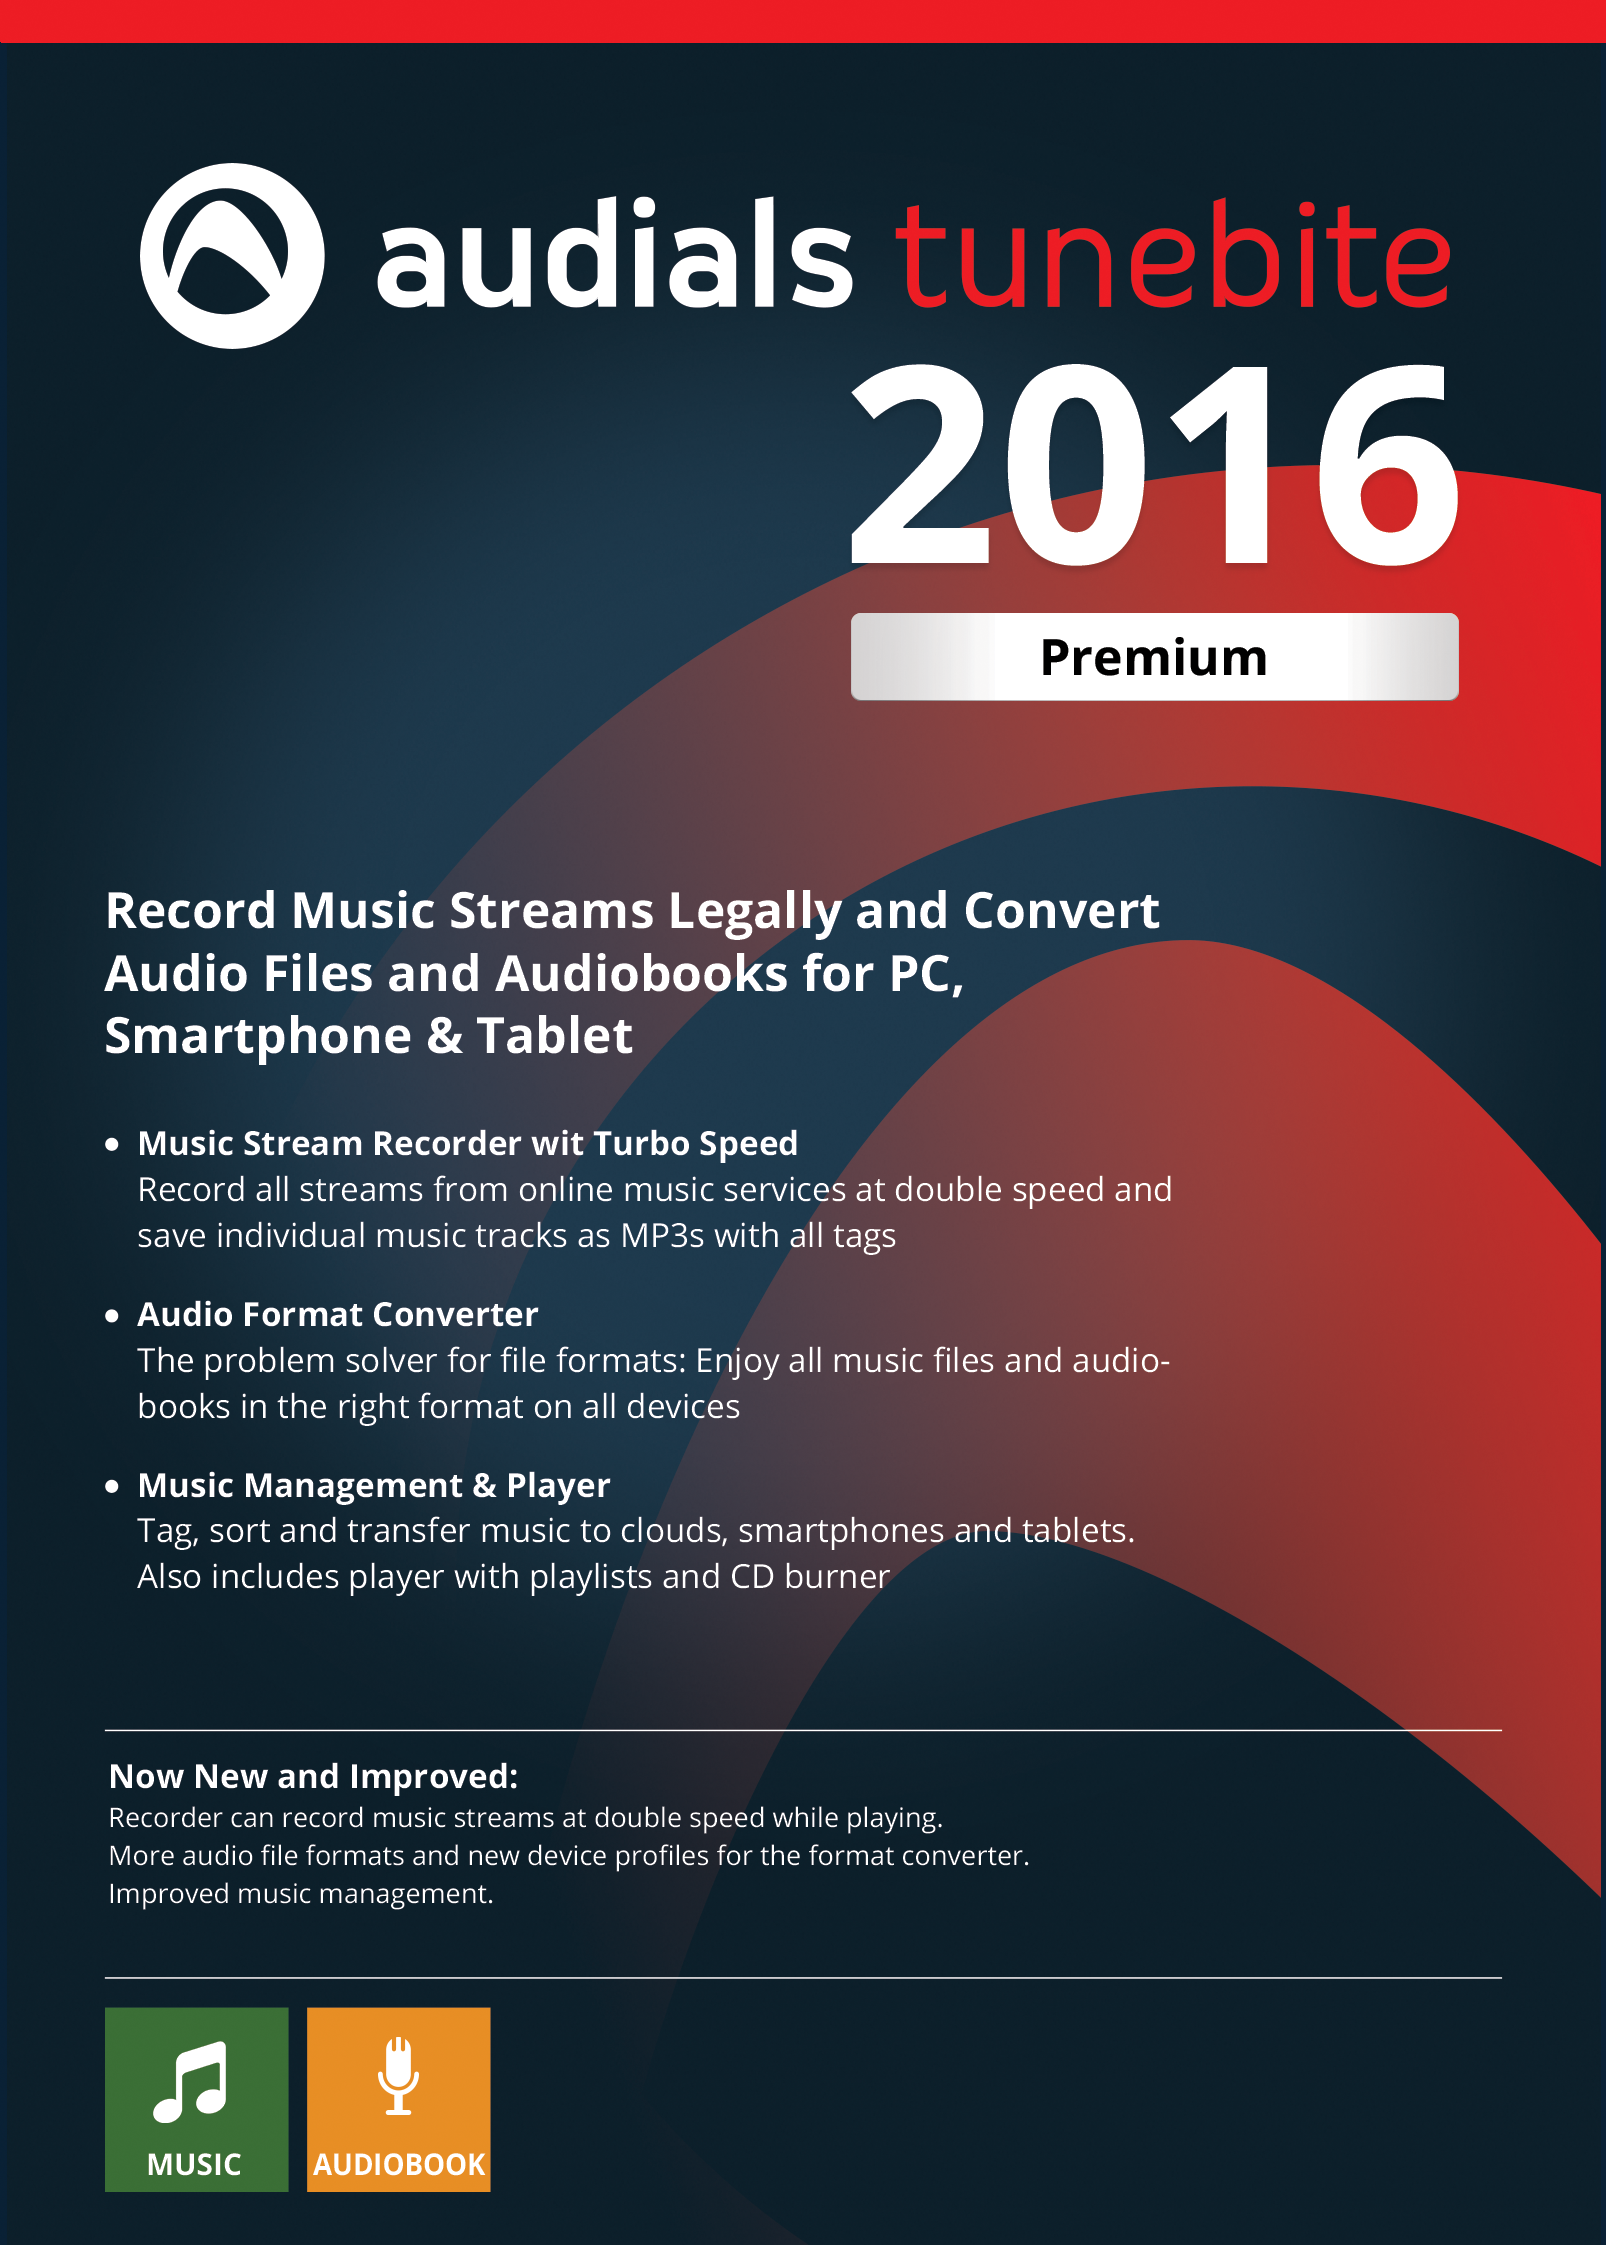 audials-tunebite-2016-premium-low-price-recorder-for-recording-music-streams-with-audio-format-conve